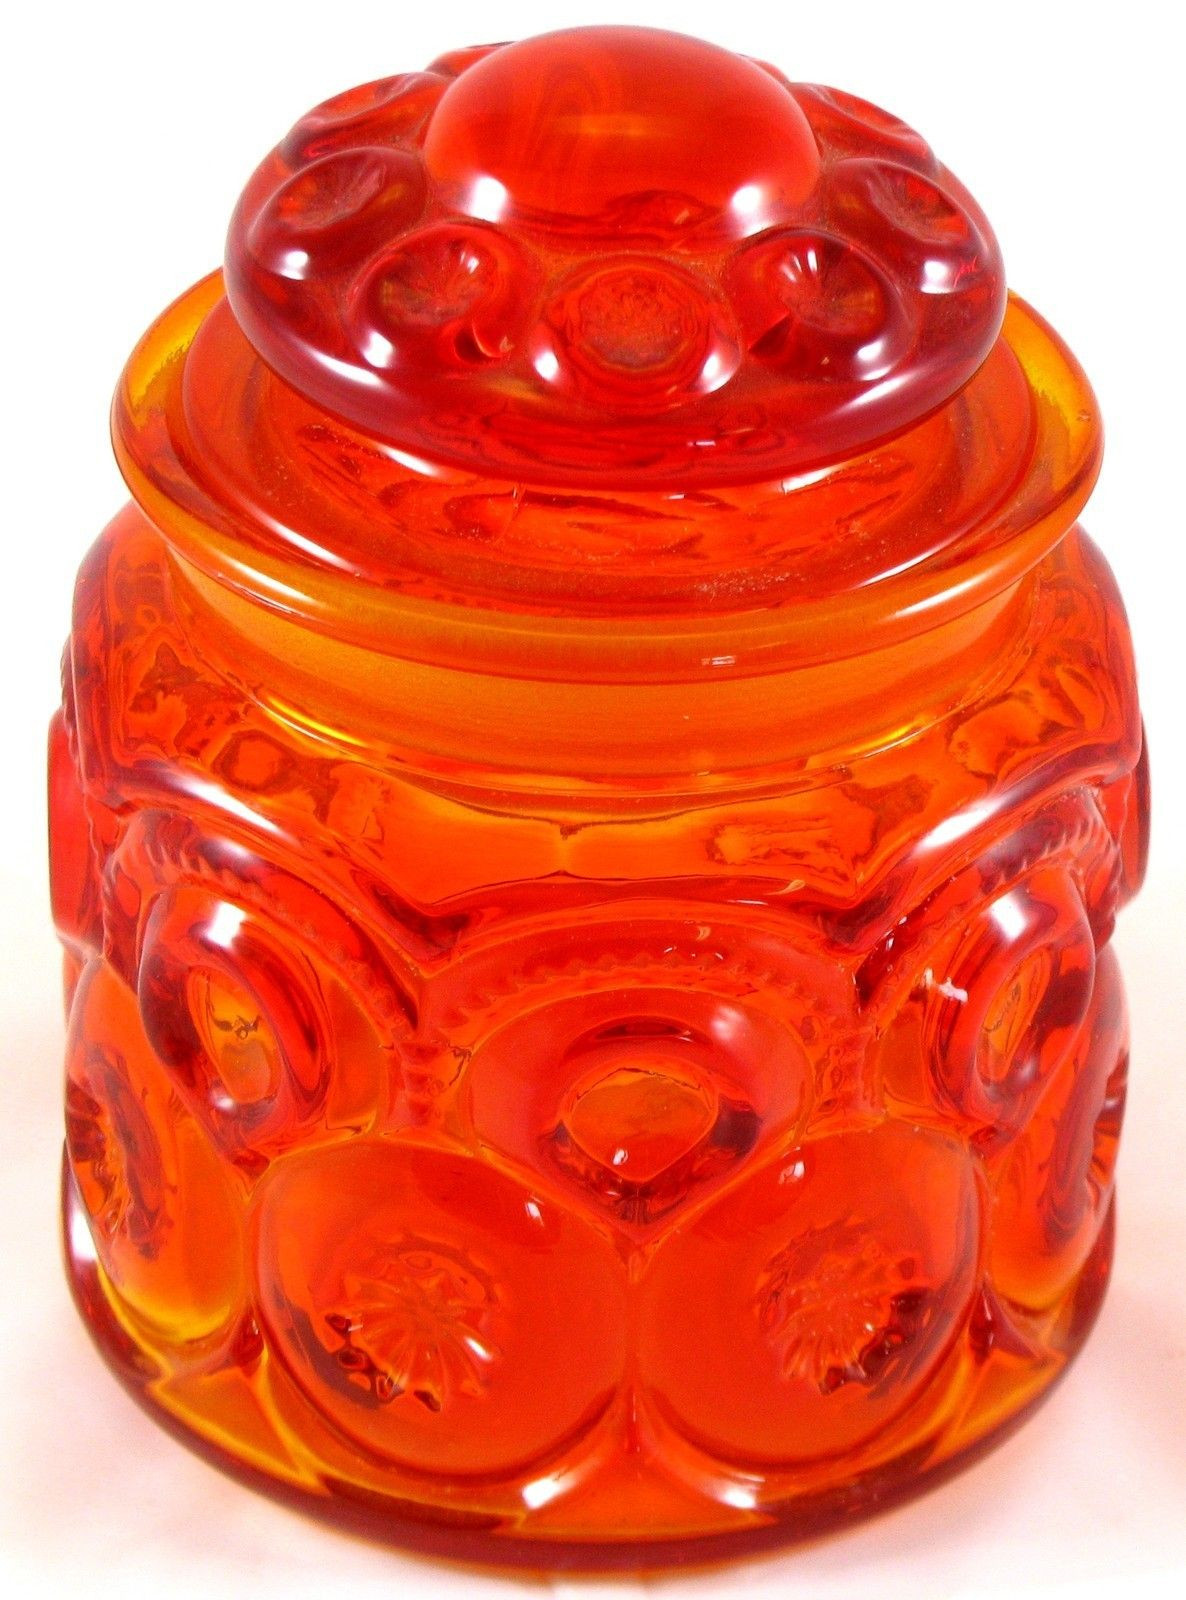 Viking Amberina Glass Vase Of L E Smith Glass Amberina Moon Stars Jar Canister Container Intended for L E Smith Glass Amberina Moon Stars Jar Canister Container Vintage Red orang